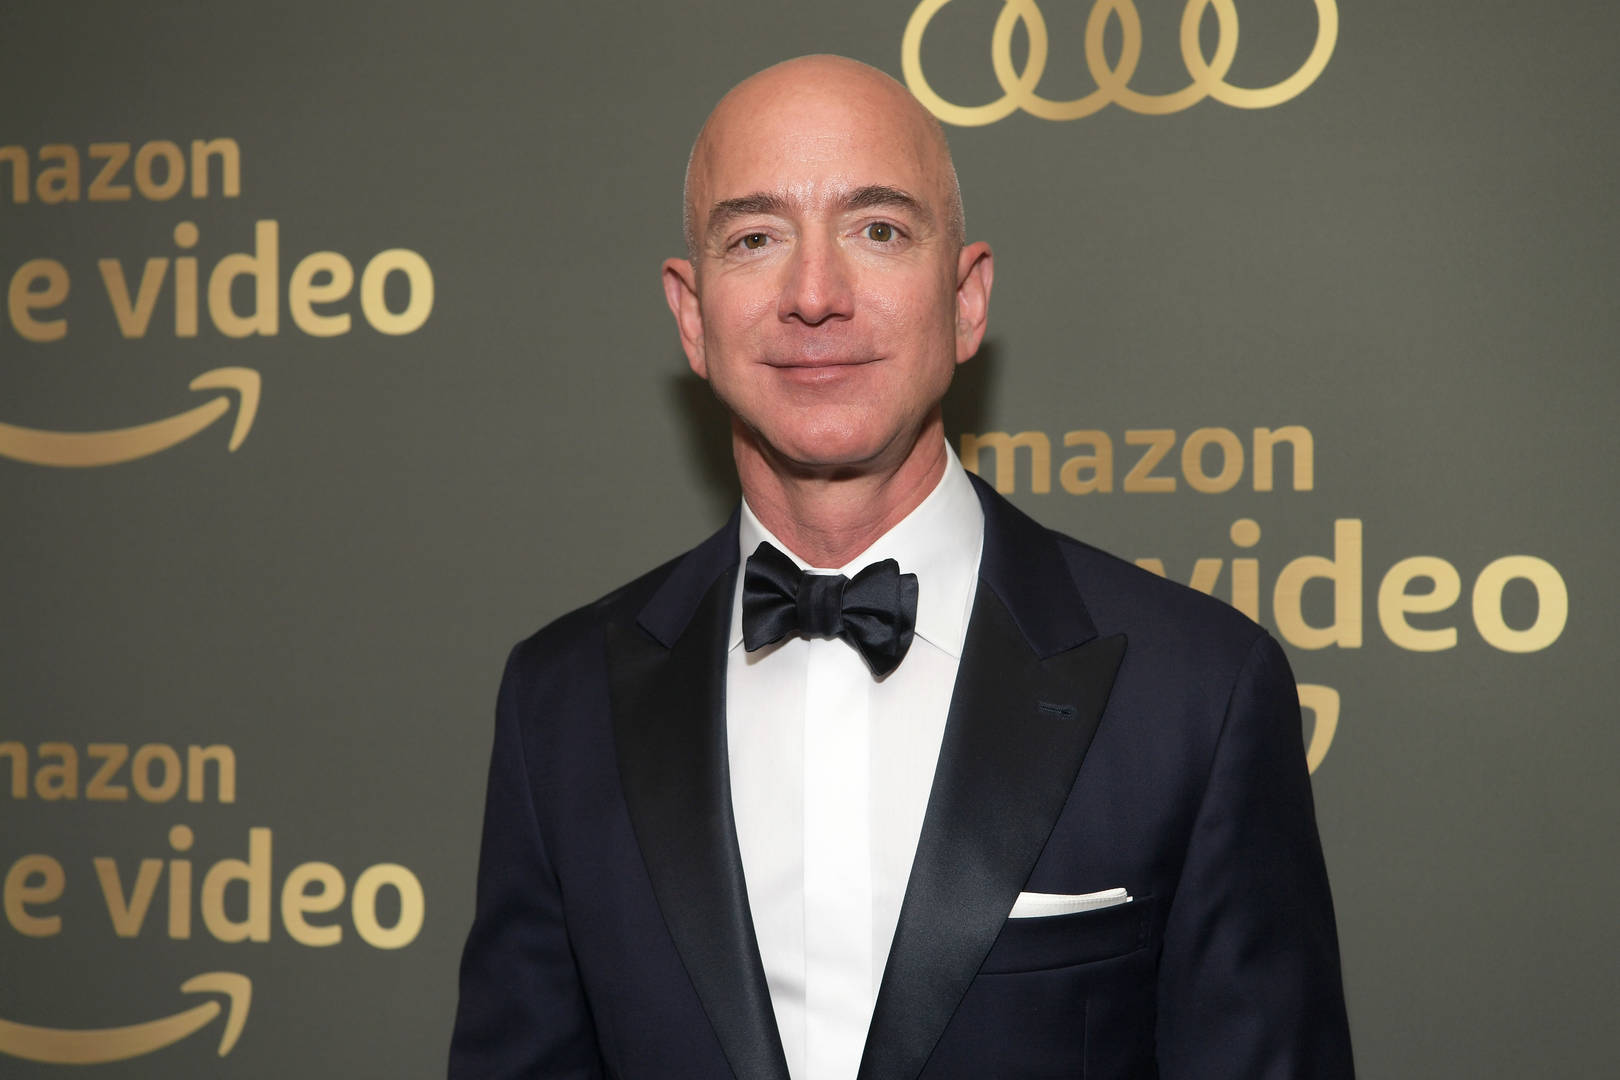 Jeff Bezos Just Made $13.5 Billion In Less Than 20 Minutes